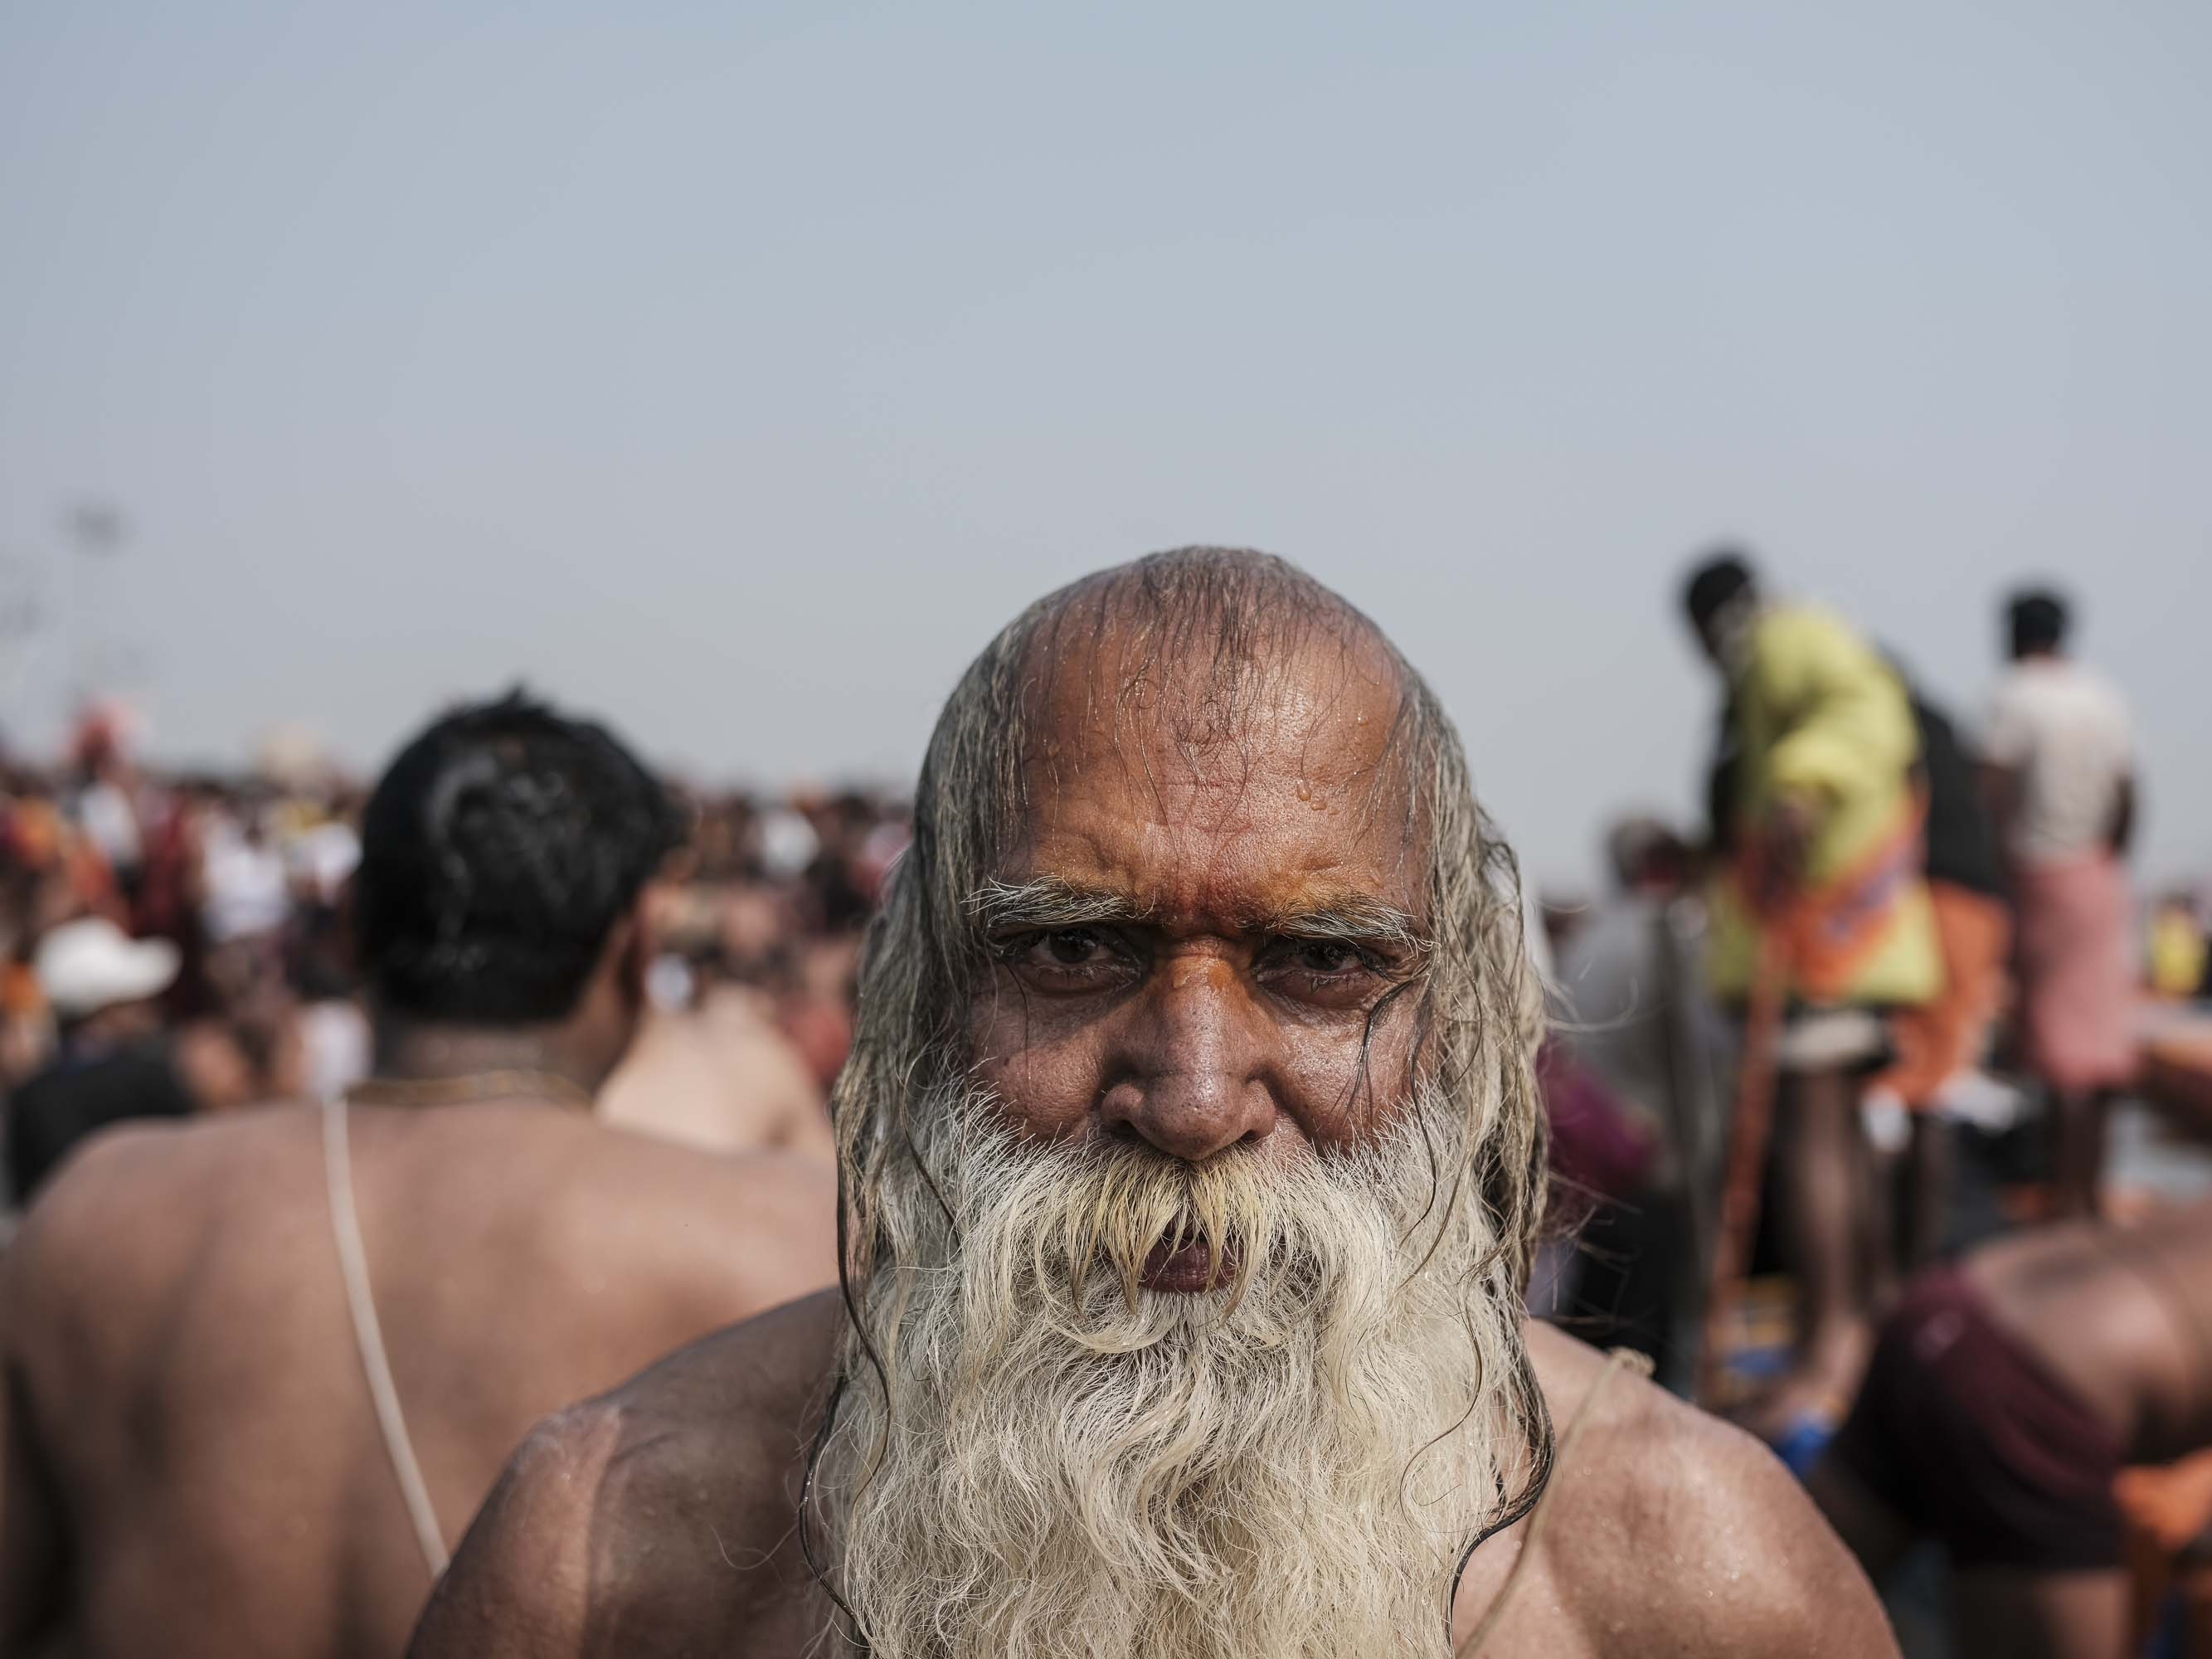 portrait Man crowed pilgrims Kumbh mela 2019 India Allahabad Prayagraj Ardh hindu religious Festival event rivers photographer jose jeuland photography